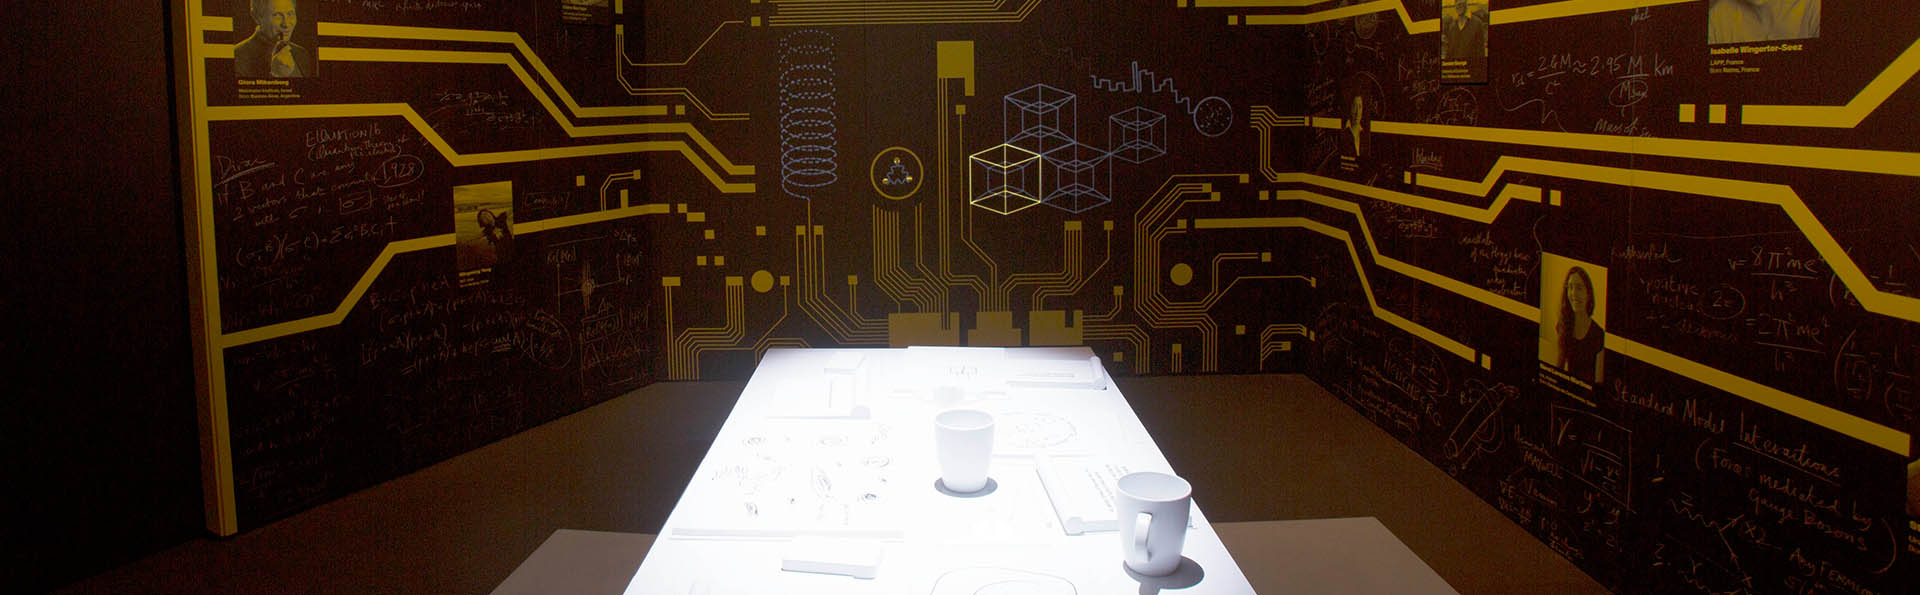 Collider Exhibition at ArtScience Museum, Marina Bay Sands